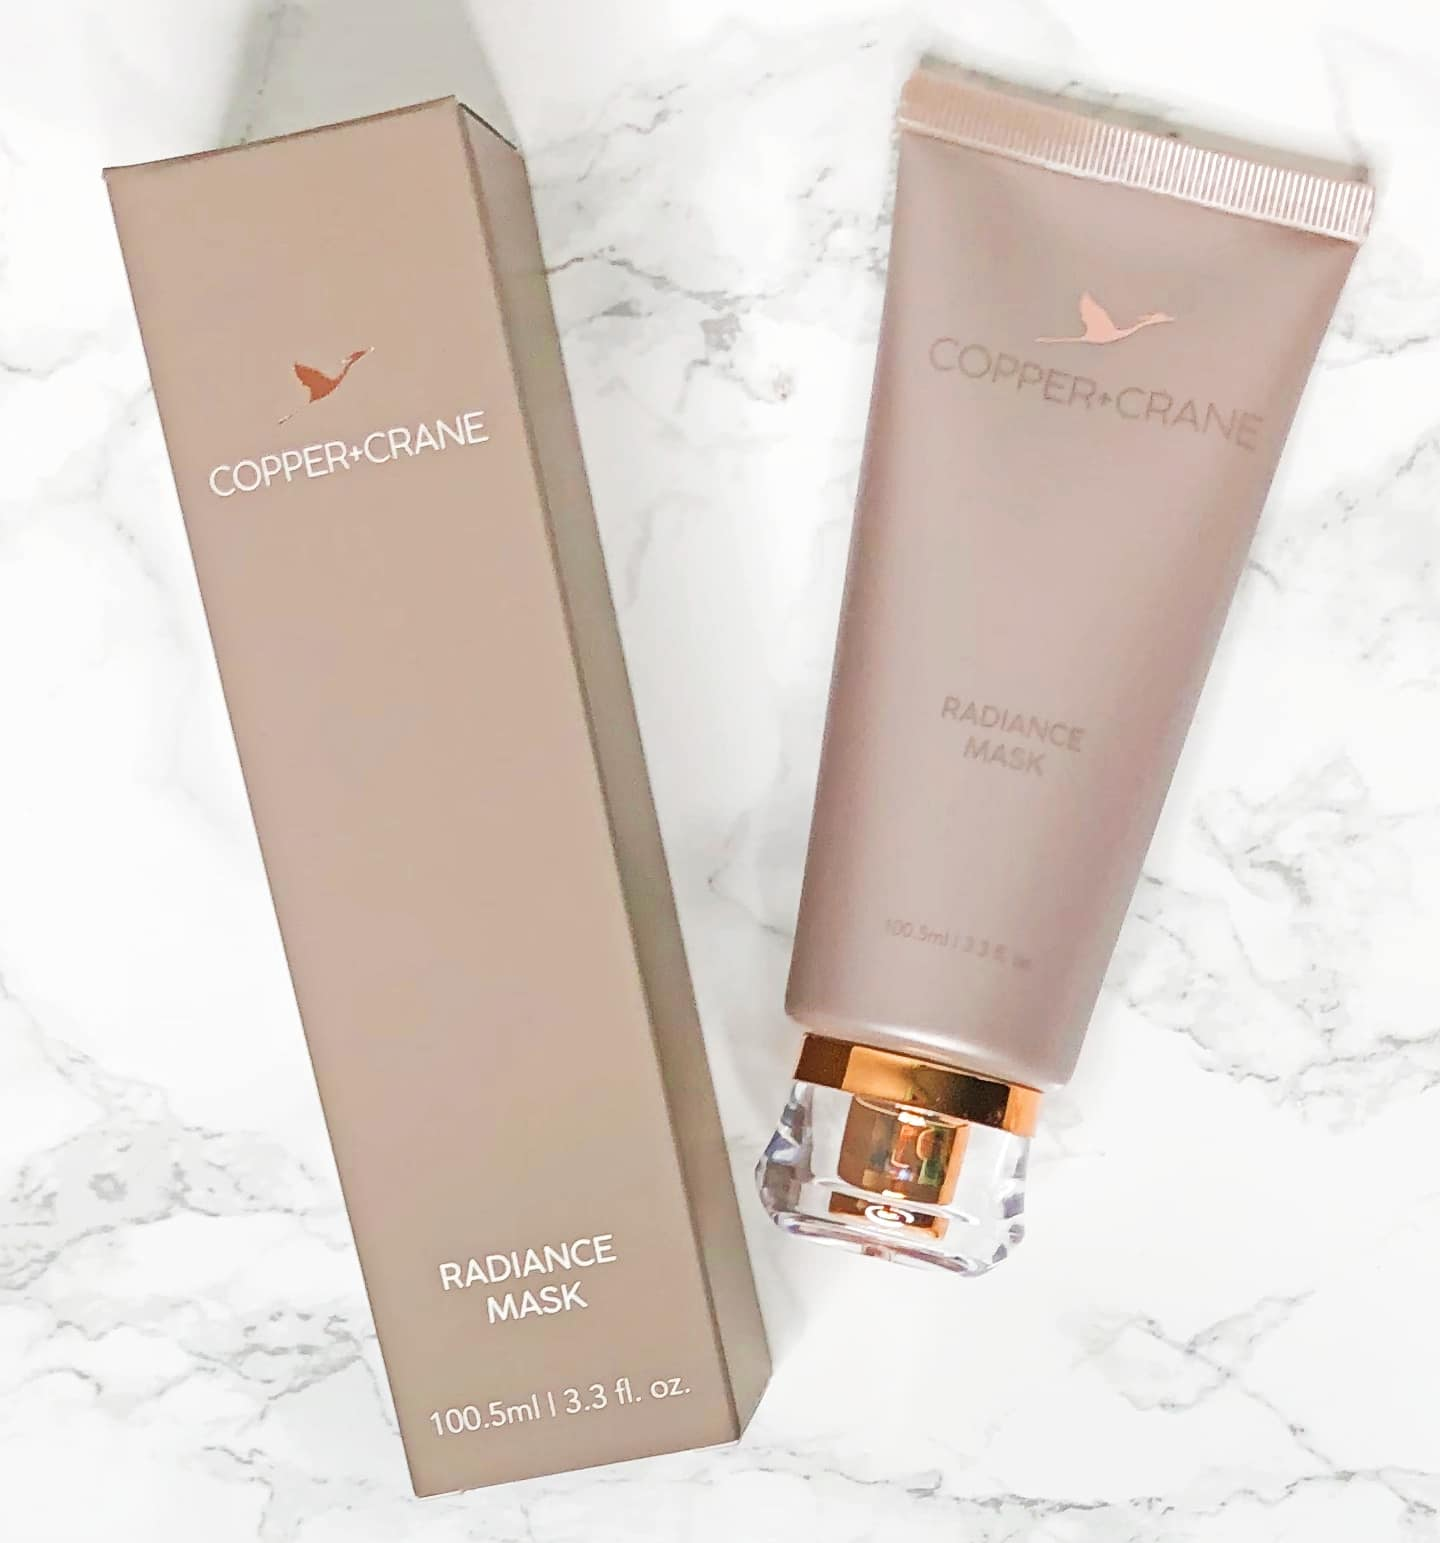 Glossybox Copper Crane Radiance Mask